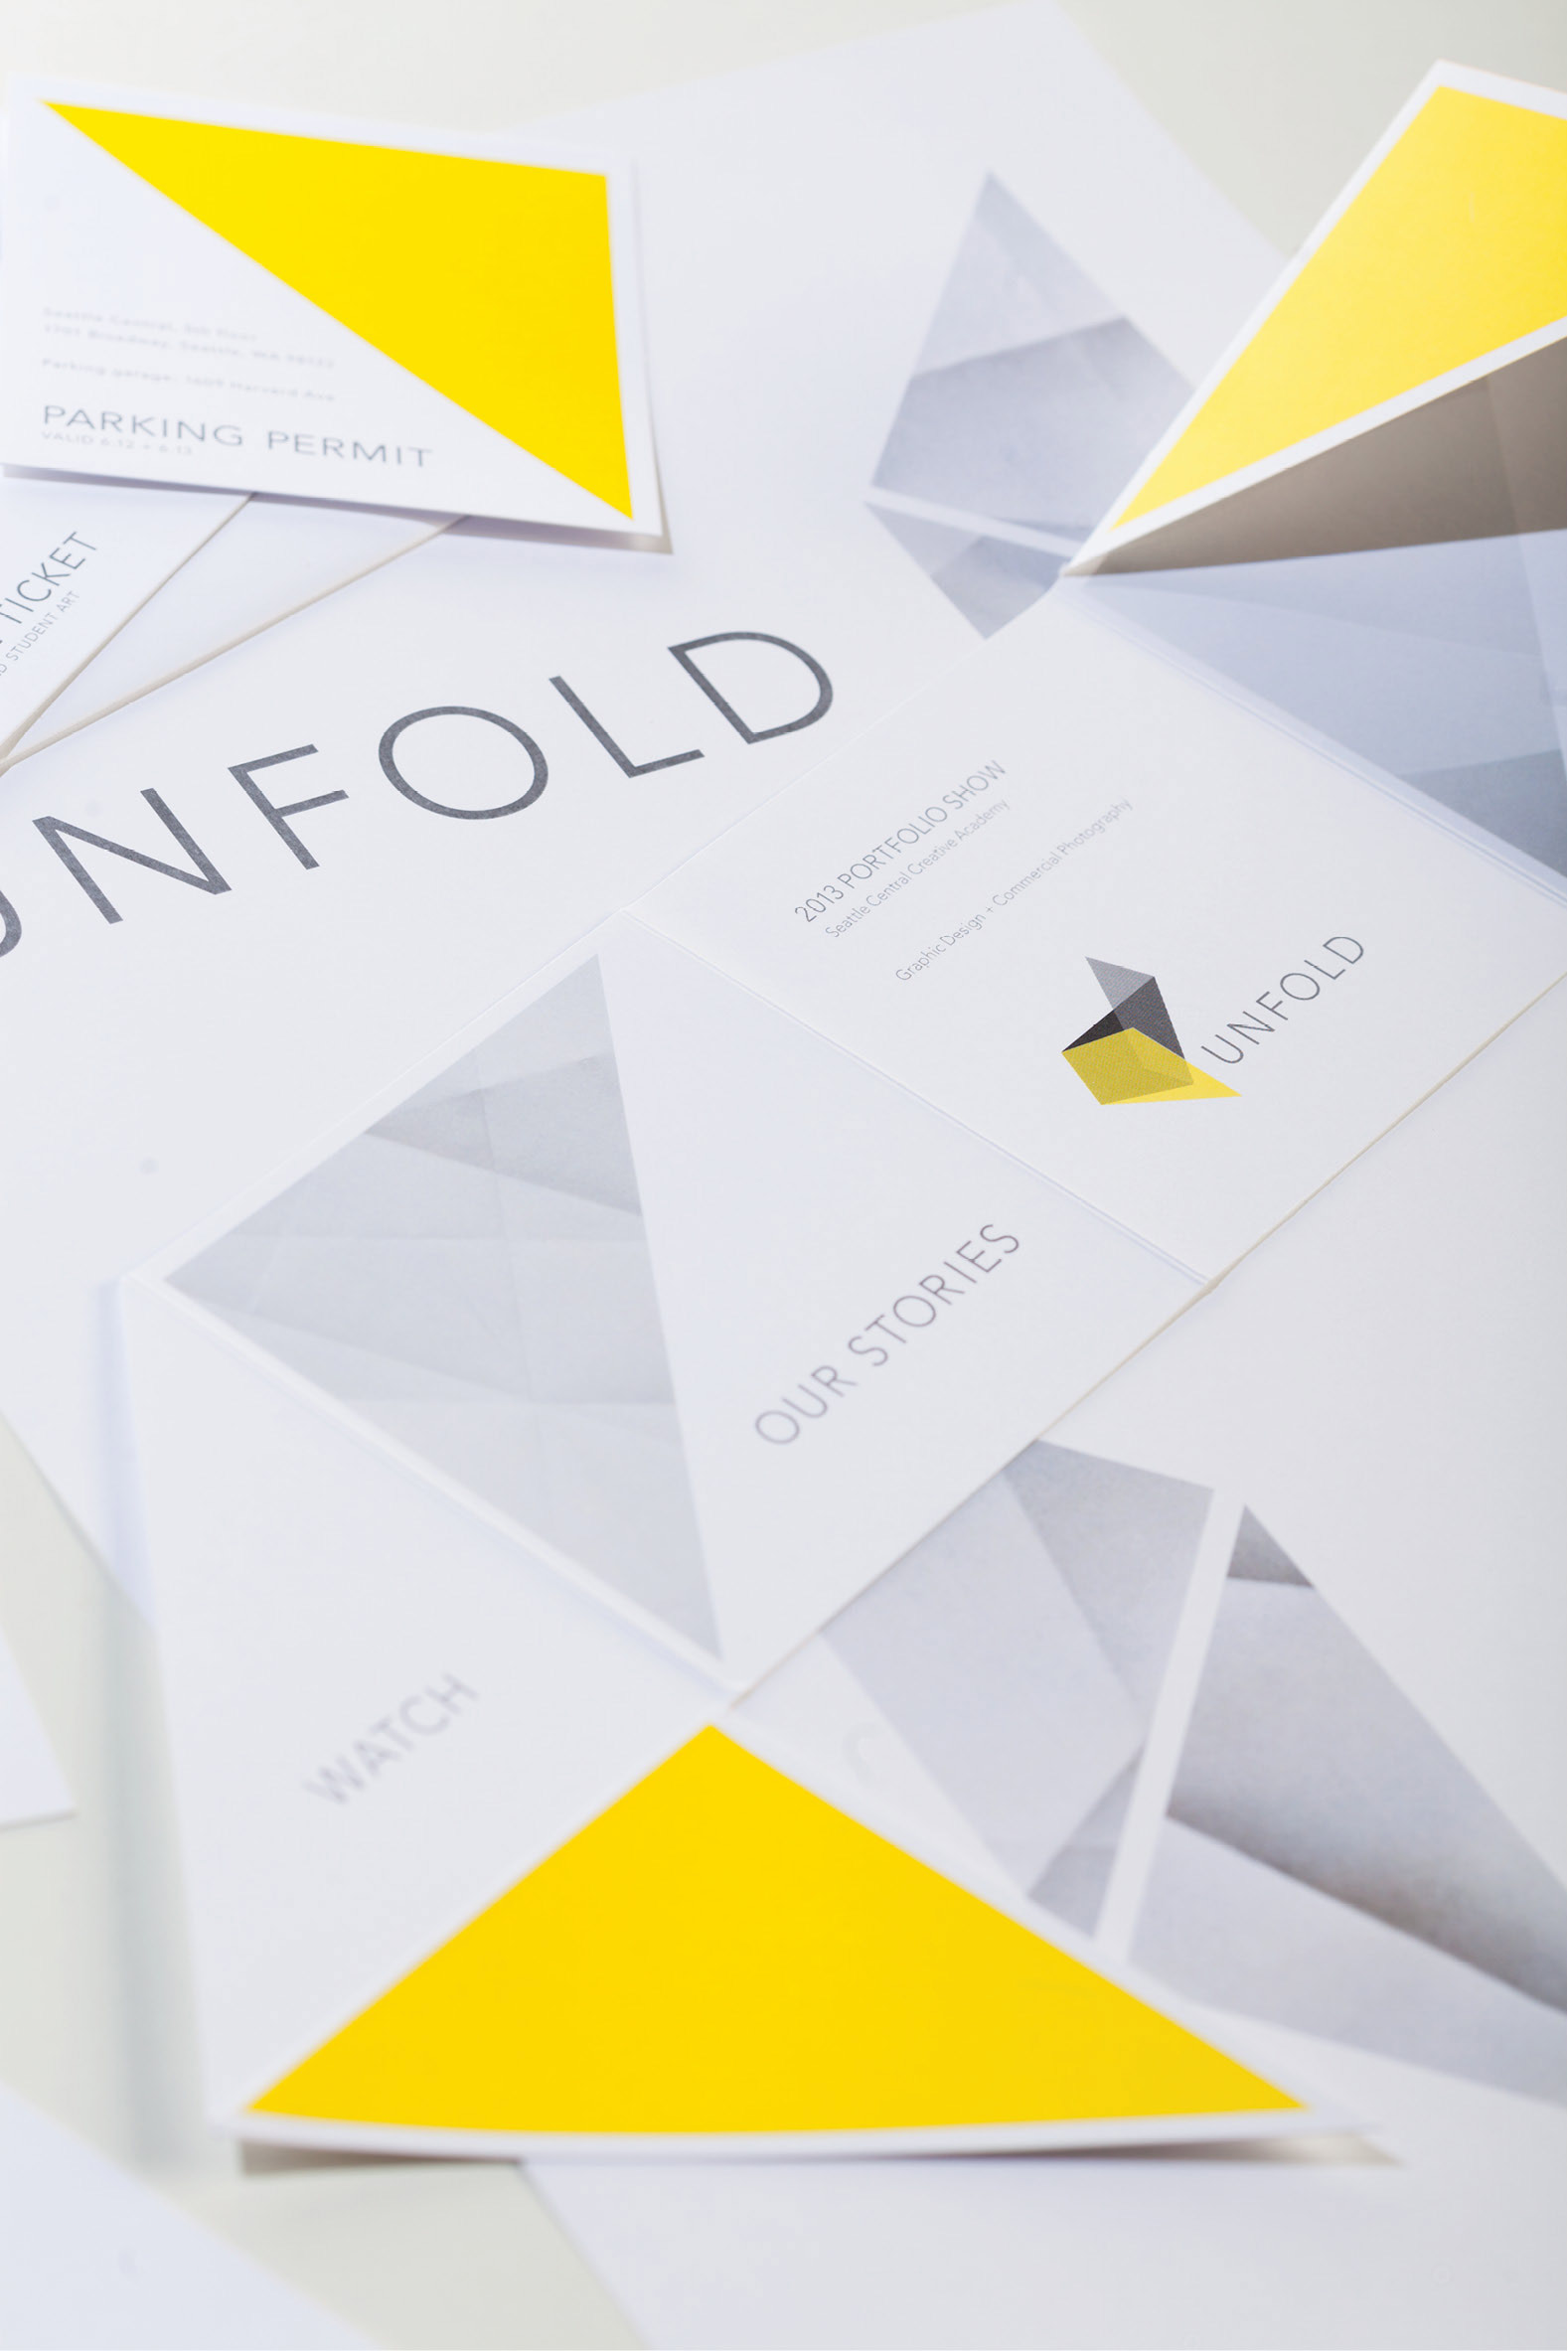 Unfold collaterol